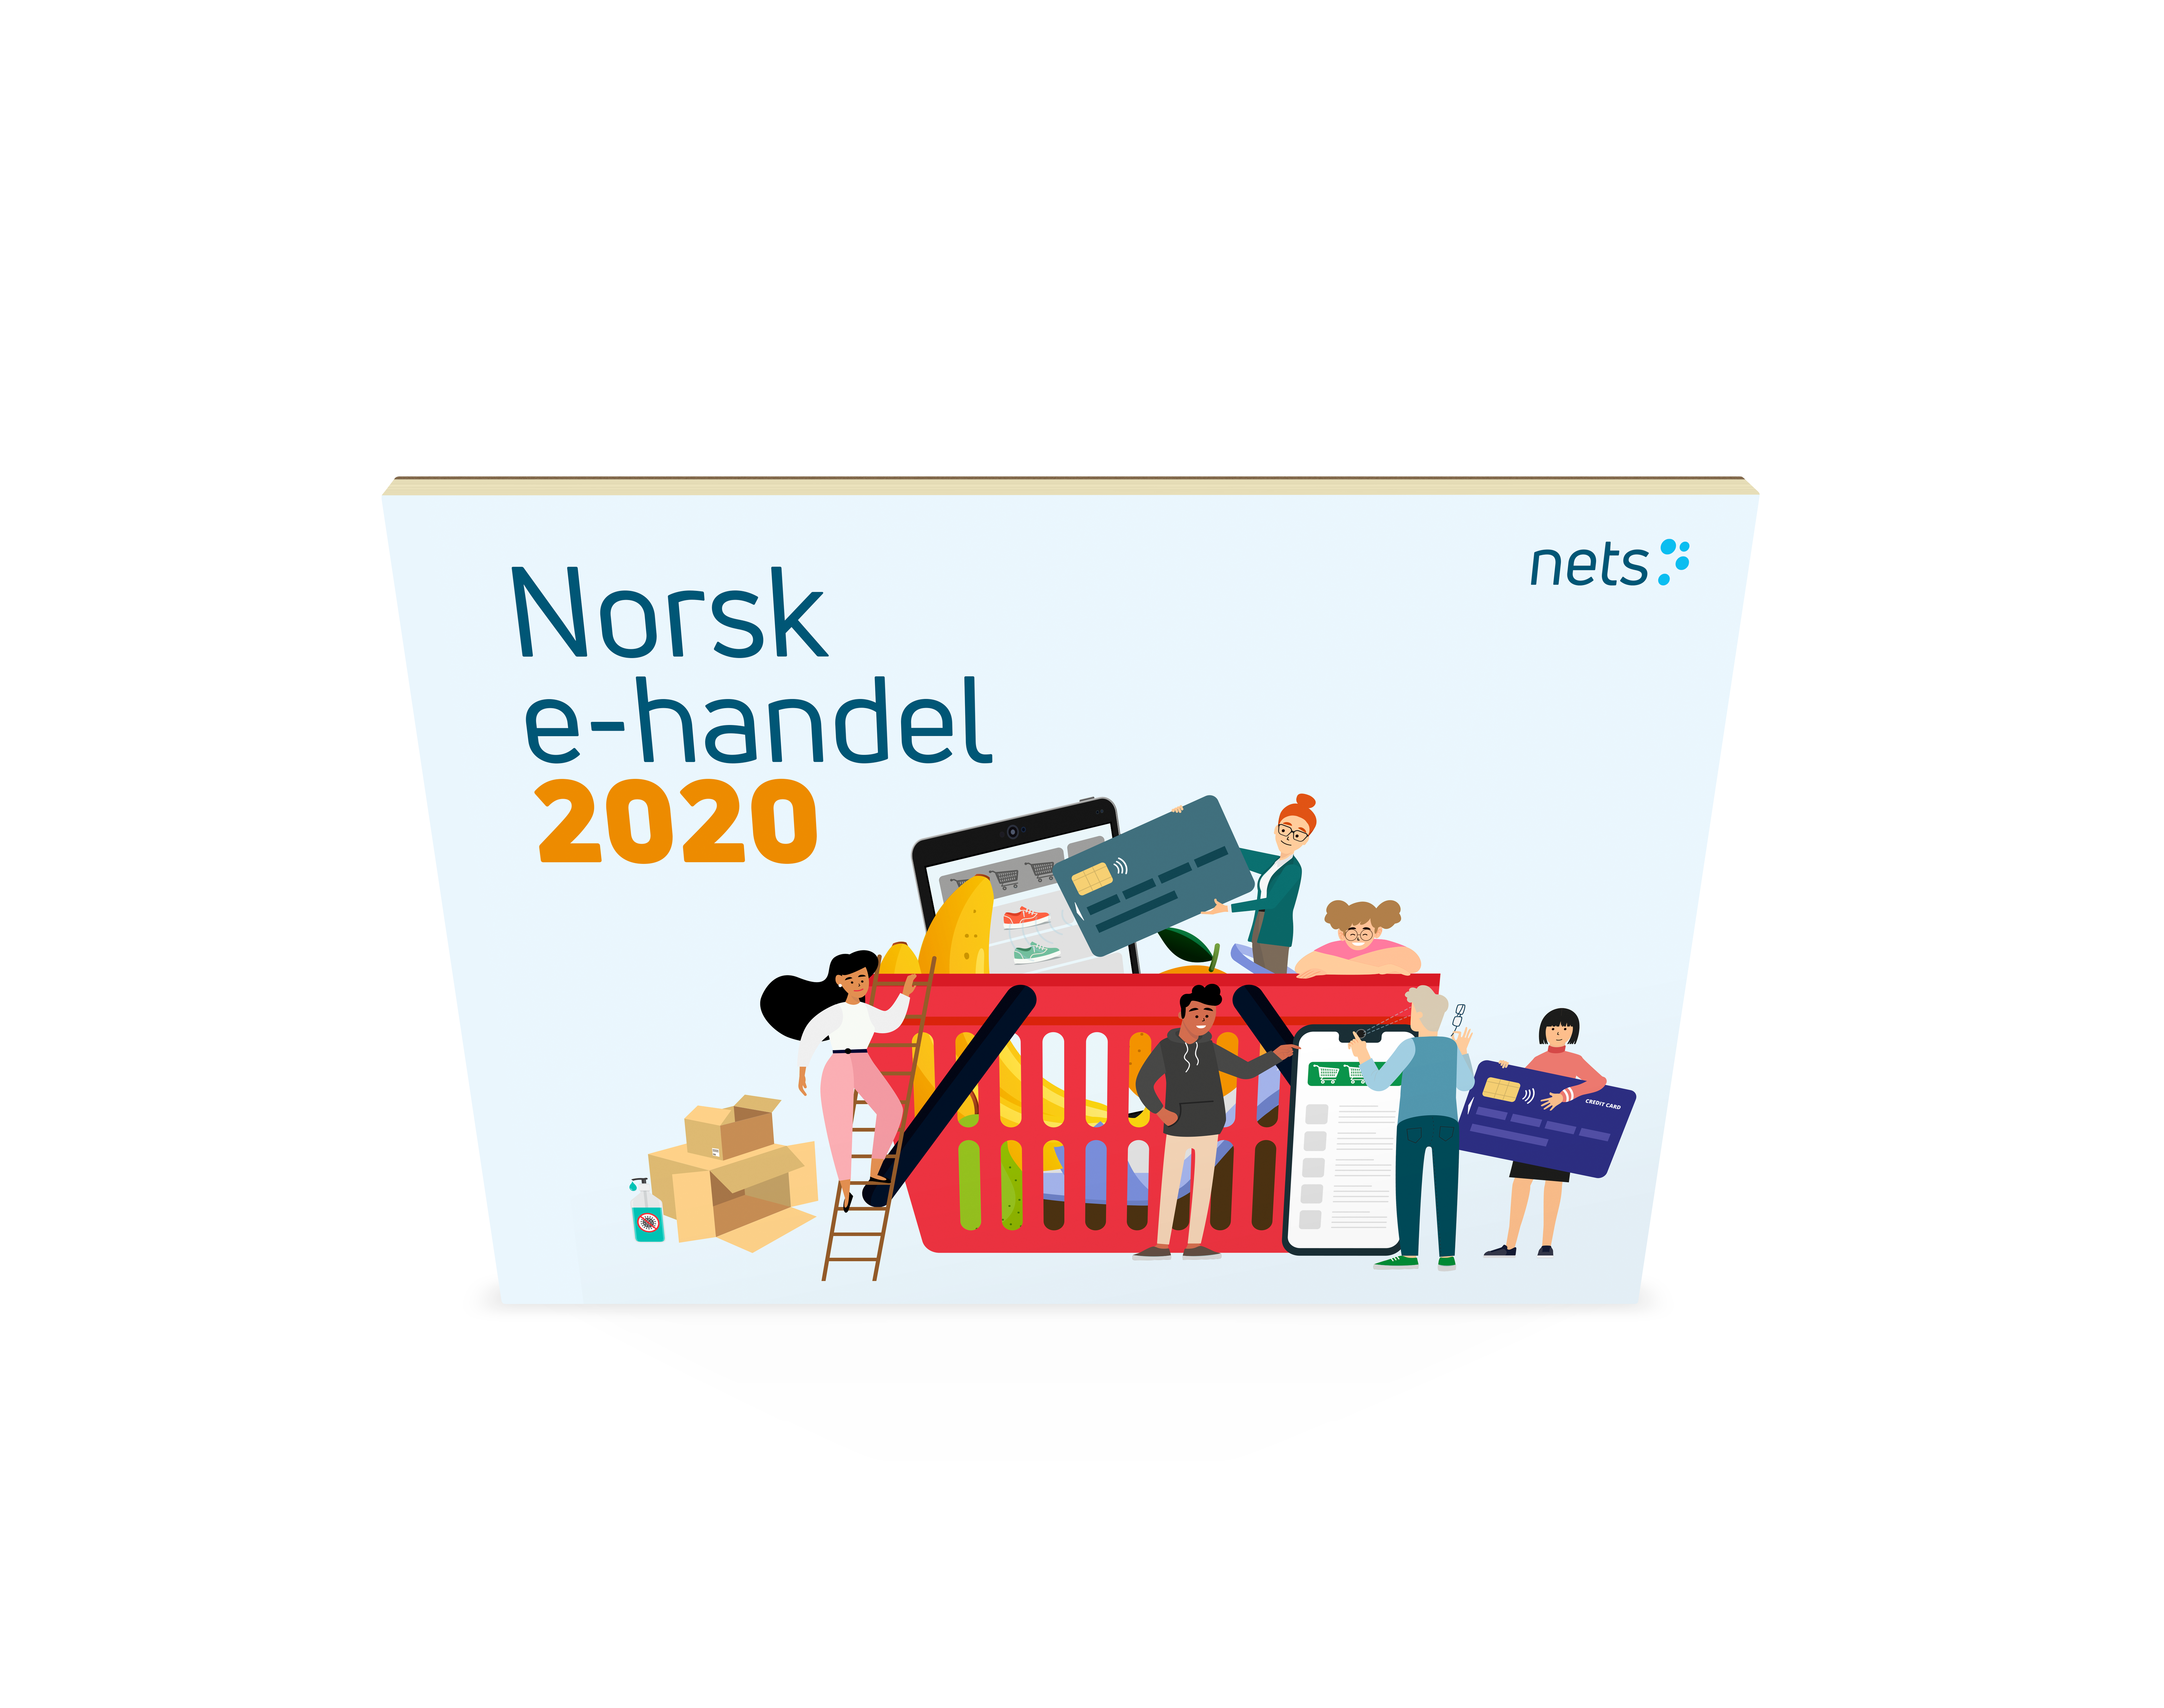 Norsk e-handel 2020 front page